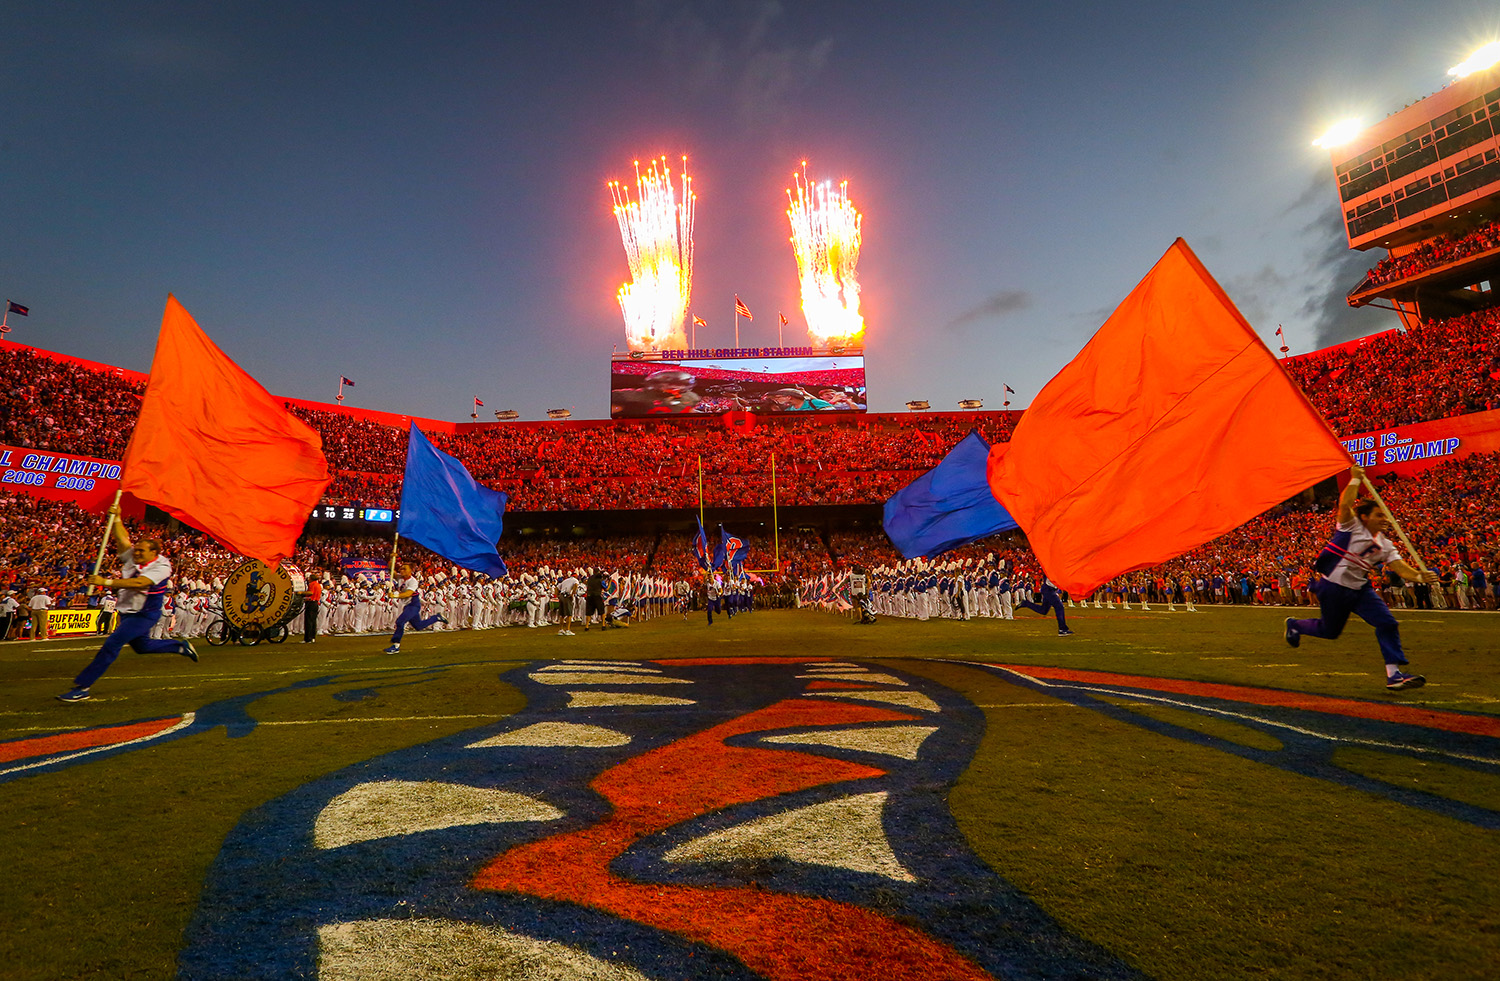 Florida Gators versus Texas A&M Aggies at Ben Hill Griffin Stadium on Saturday, Oct. 14, 2017 in Gainesville, Fla. The Aggies defeated Florida 19-17. (Photo by Matt Stamey)